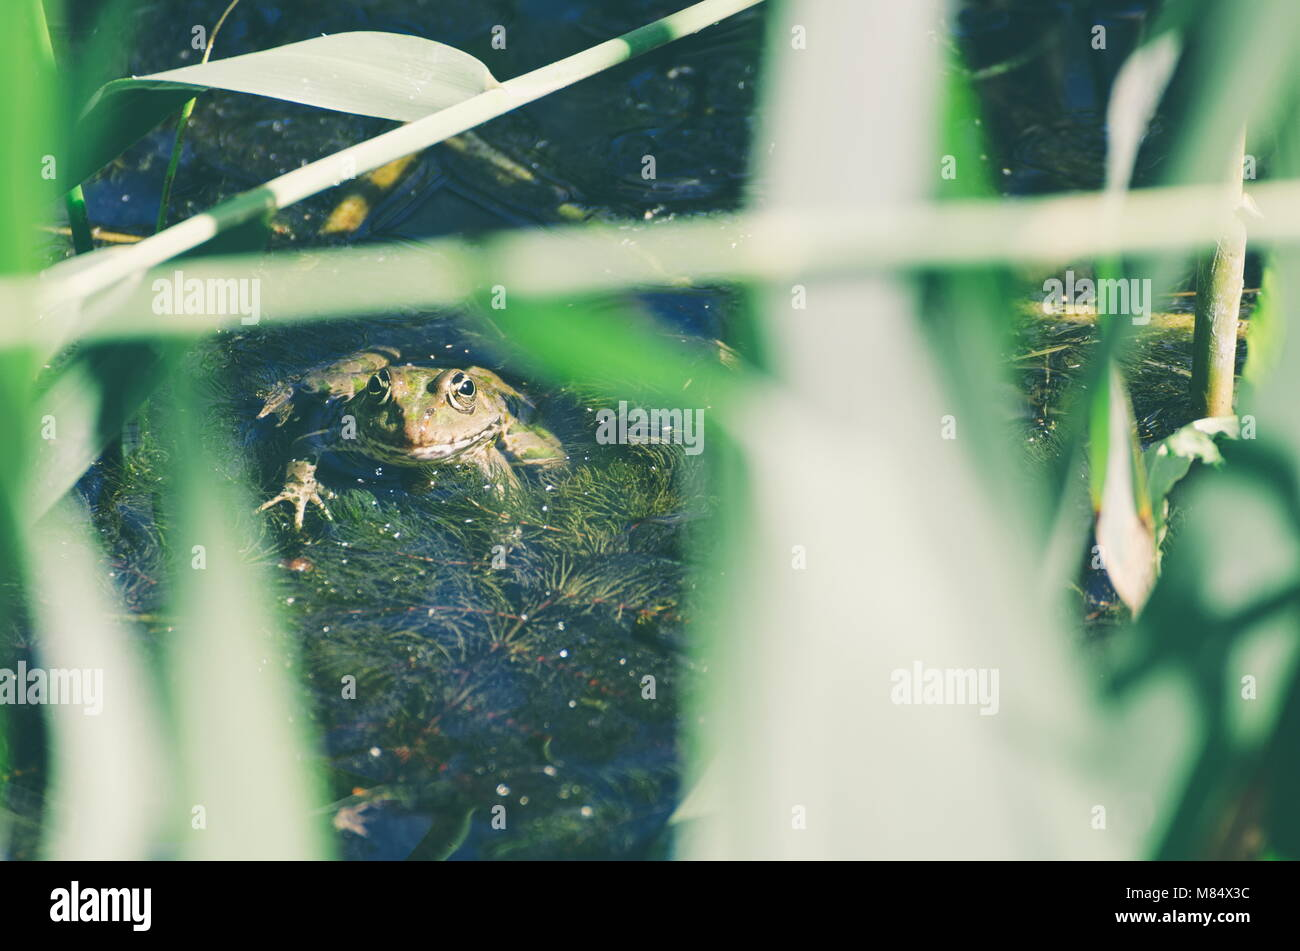 Green Frog in Marsh Water with Reeds Stock Photo